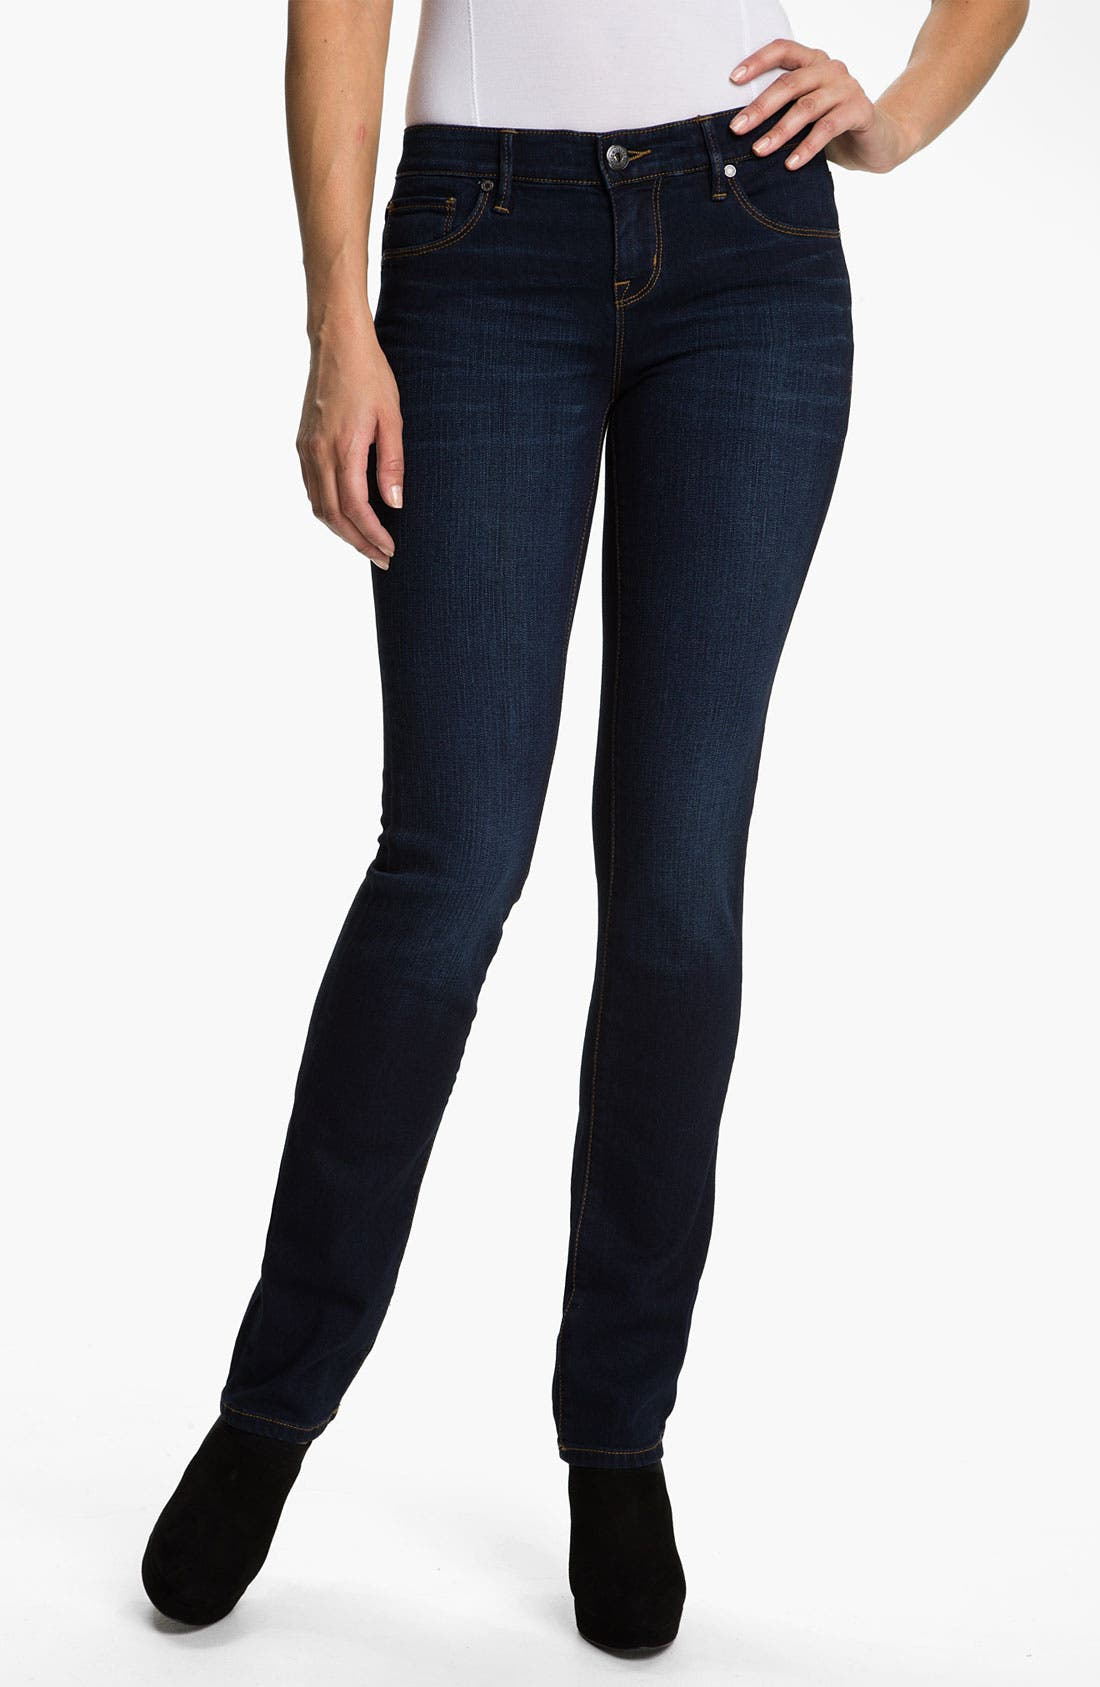 Alternate Image 1 Selected - Isaac Mizrahi Jeans 'Emma' Straight Leg Jeans (Tribeca Wash)